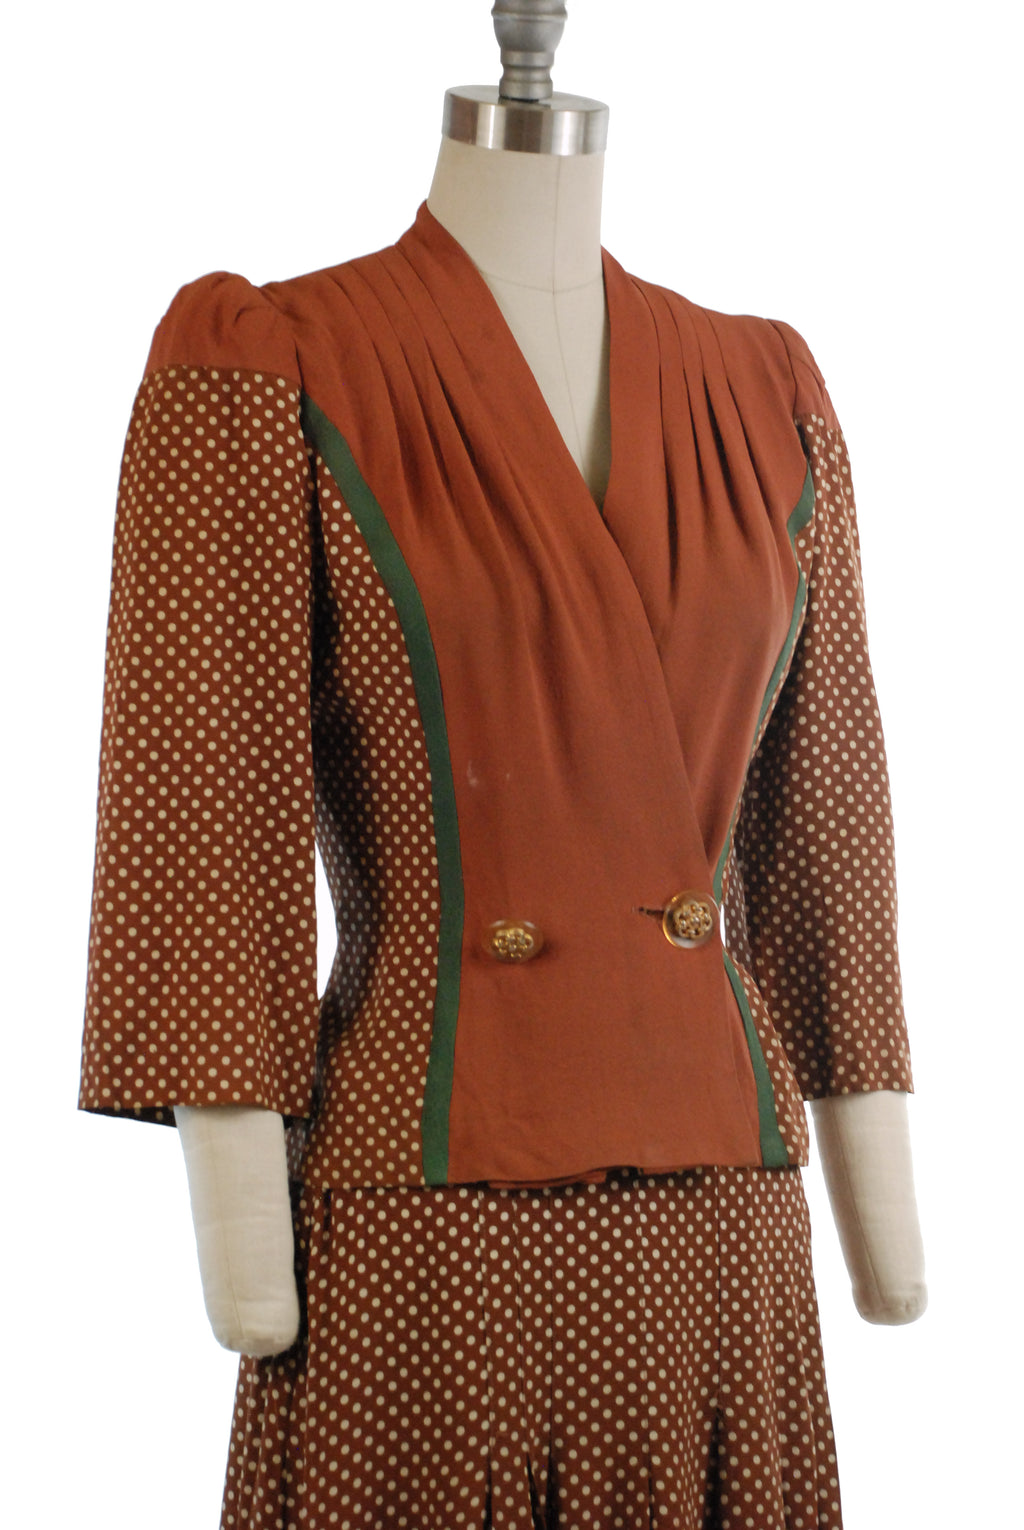 Fantastic 1940s Two Piece Dress Suit Ensemble of Cold Rayon Polka Dots and Solid Brown Rayon Crepe